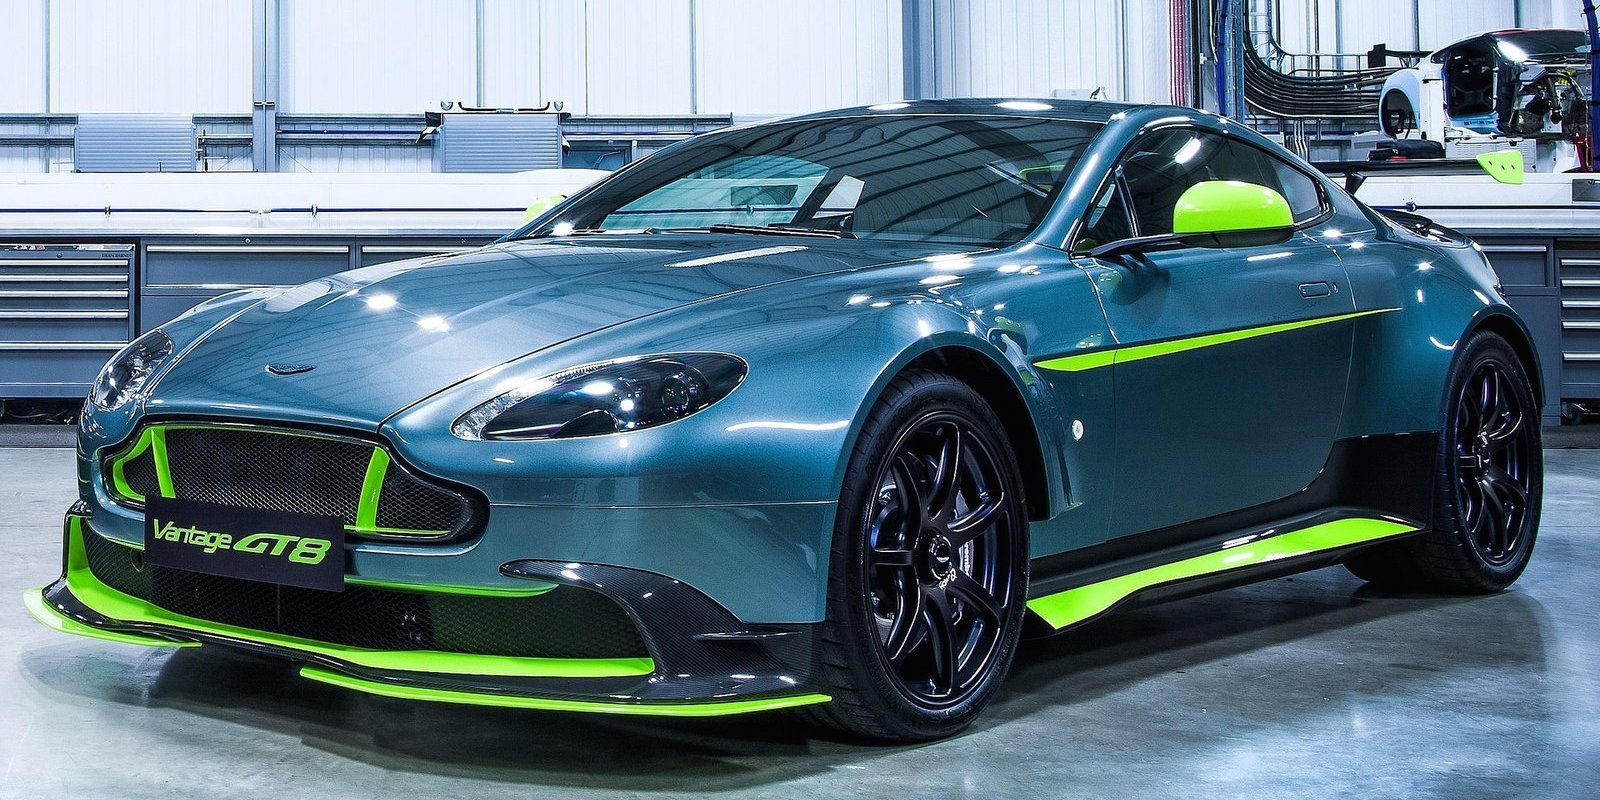 Aston Martin Vantage Cars For Sale